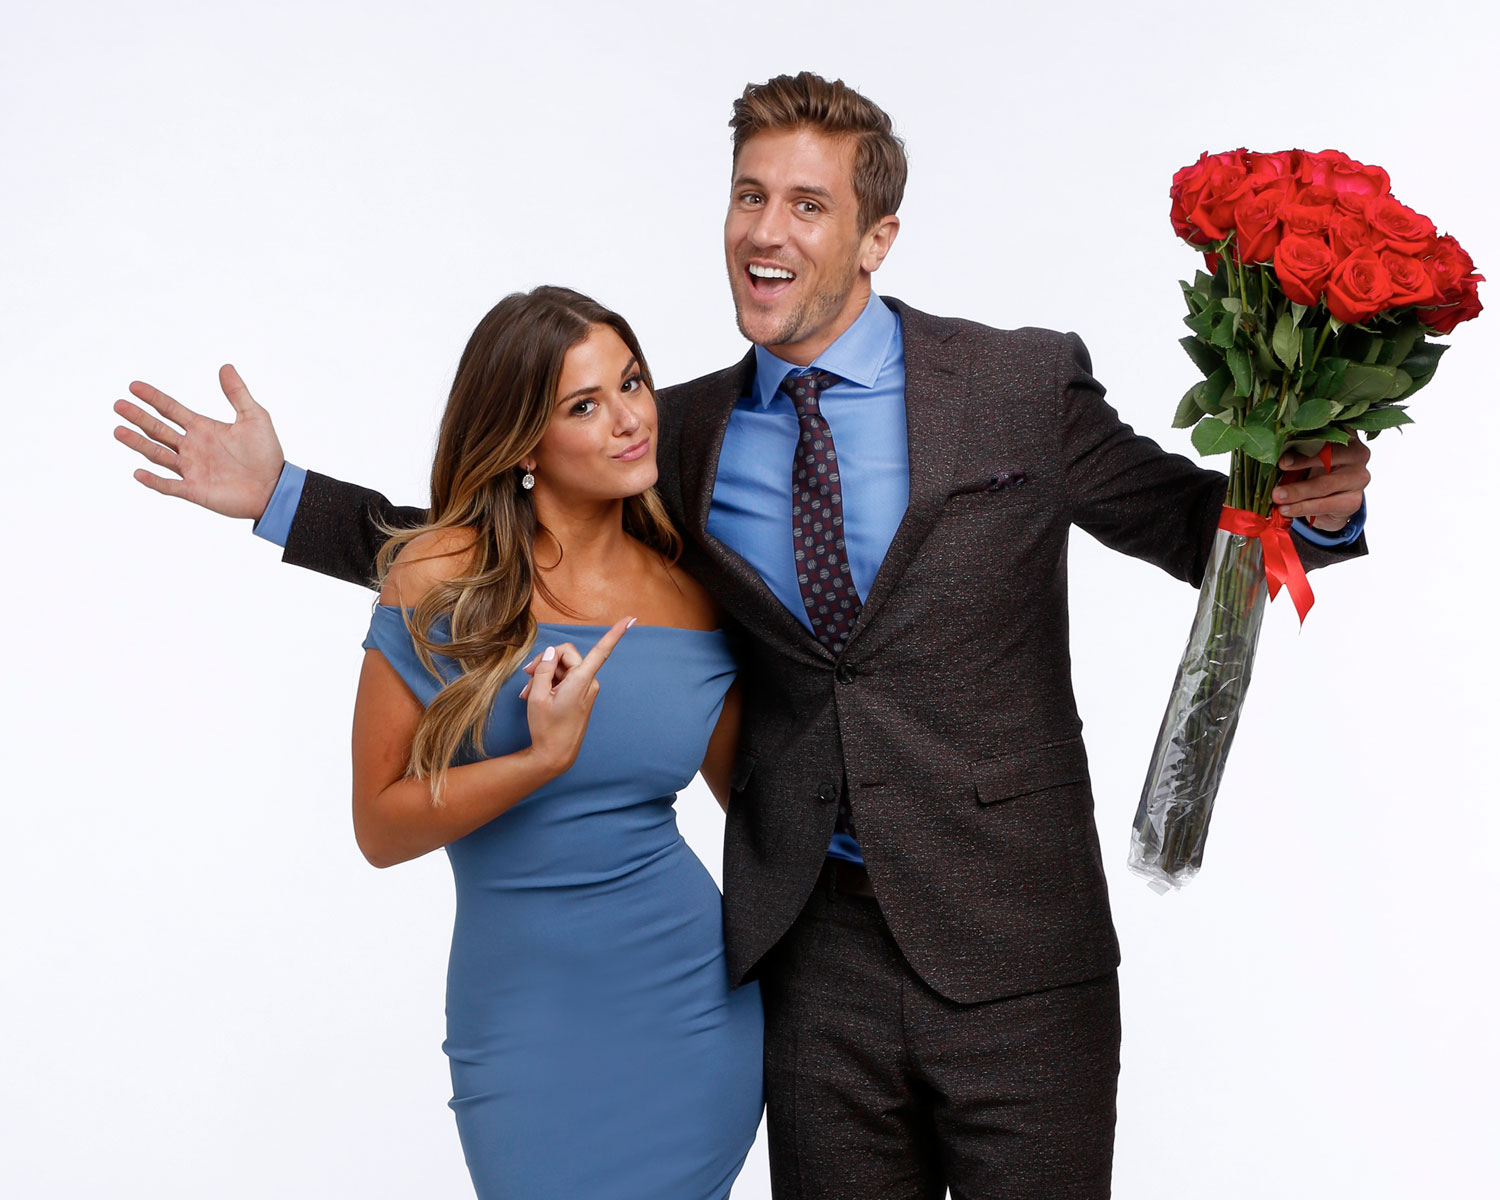 JoJo Fletcher Jordan Rodgers The Bachelorette engaged